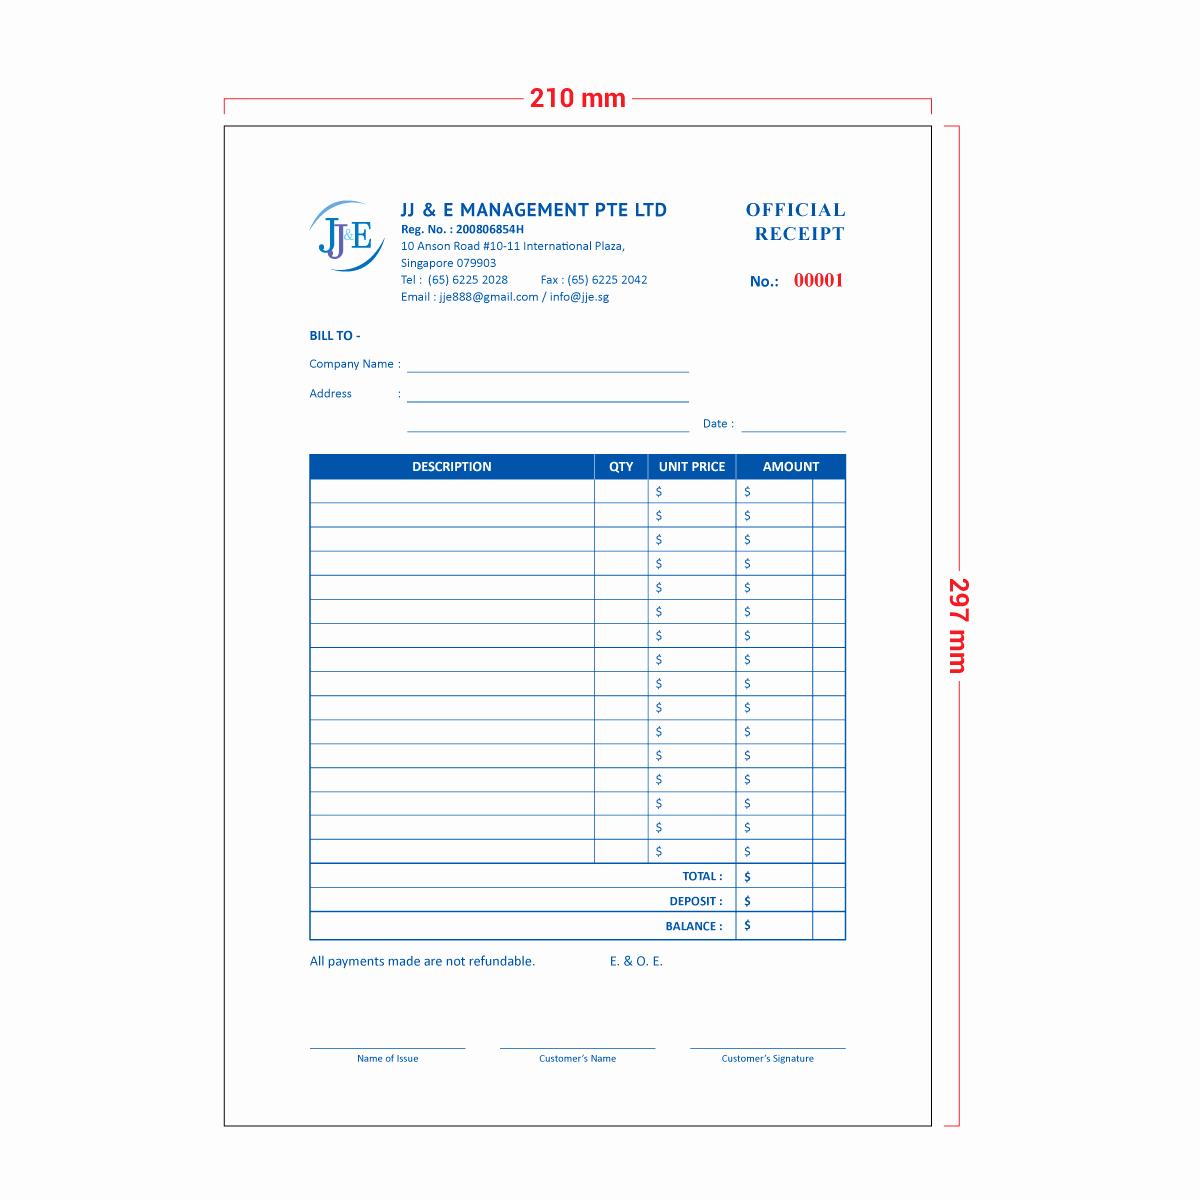 Is An Invoice A Receipt Fresh Invoice Receipt Book A4 20 Books Jj & E